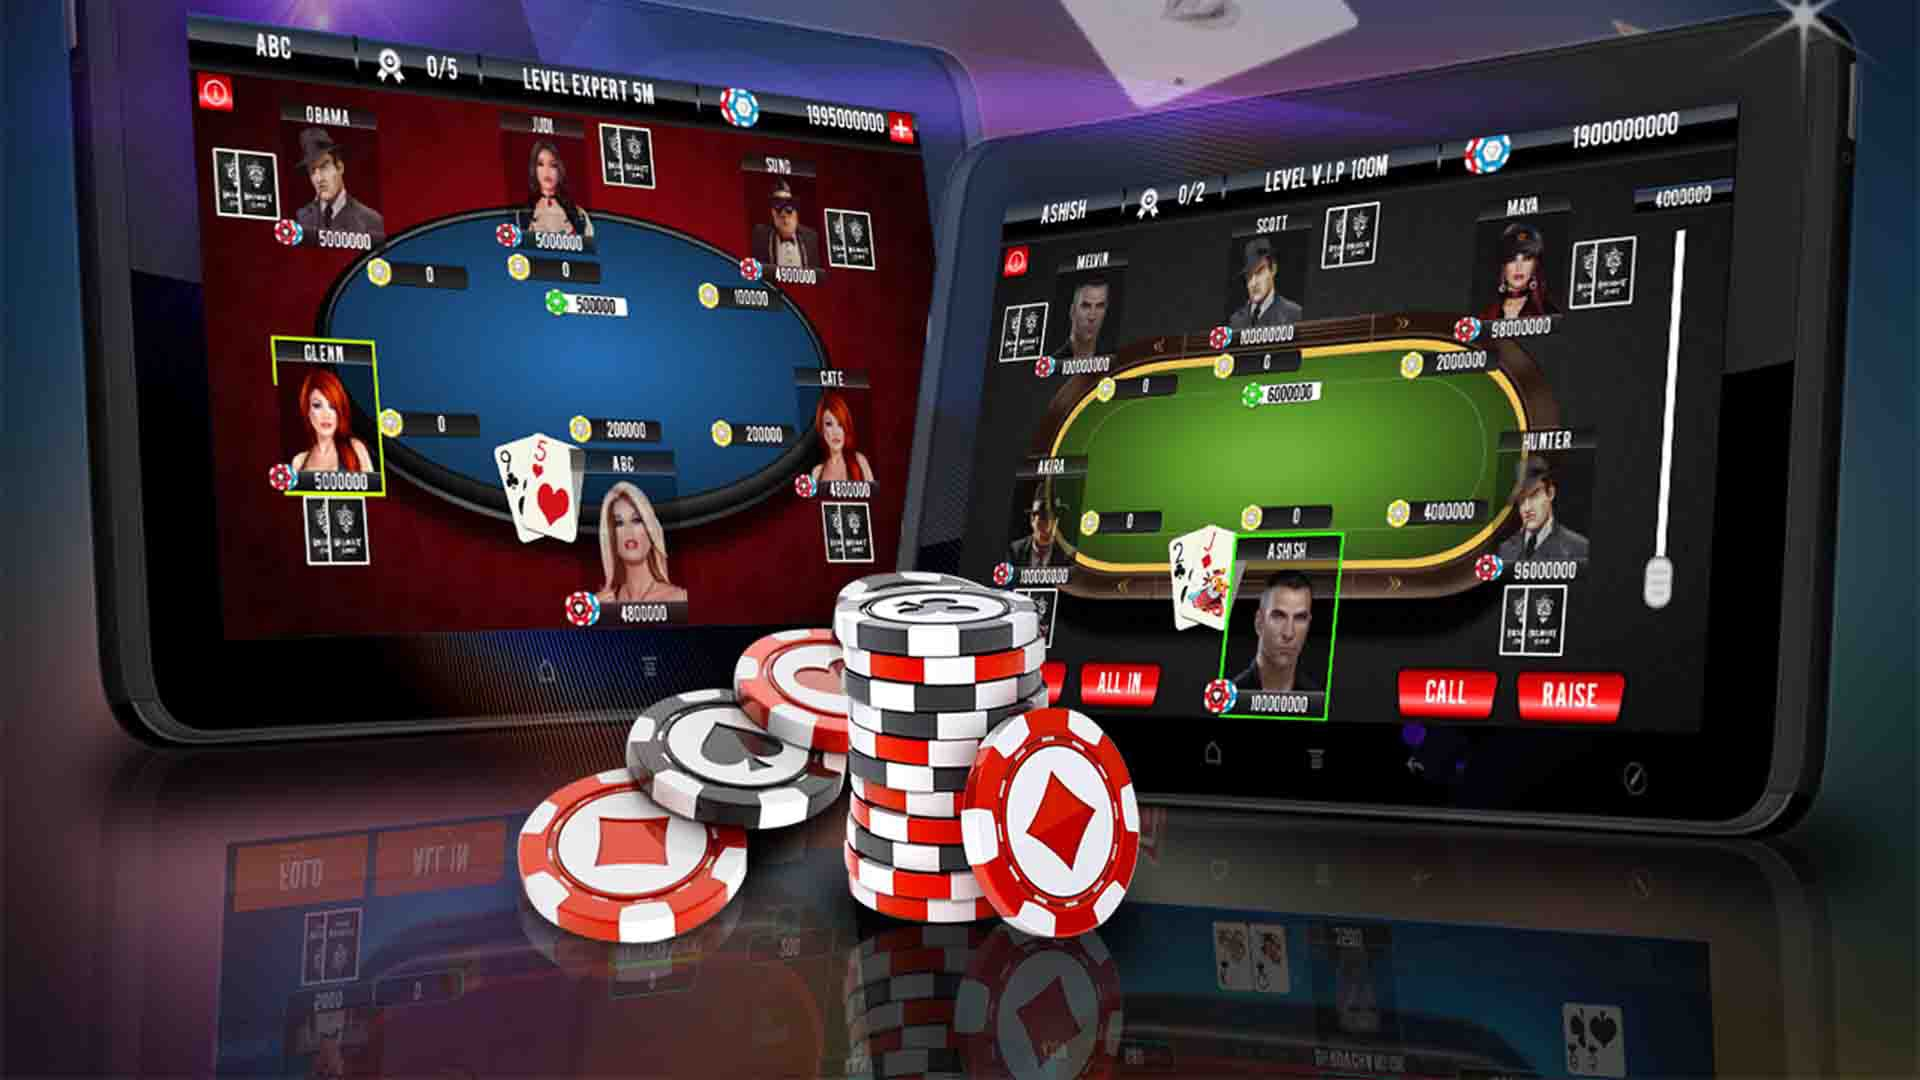 Play Poker Online? Check Out Idn Poker